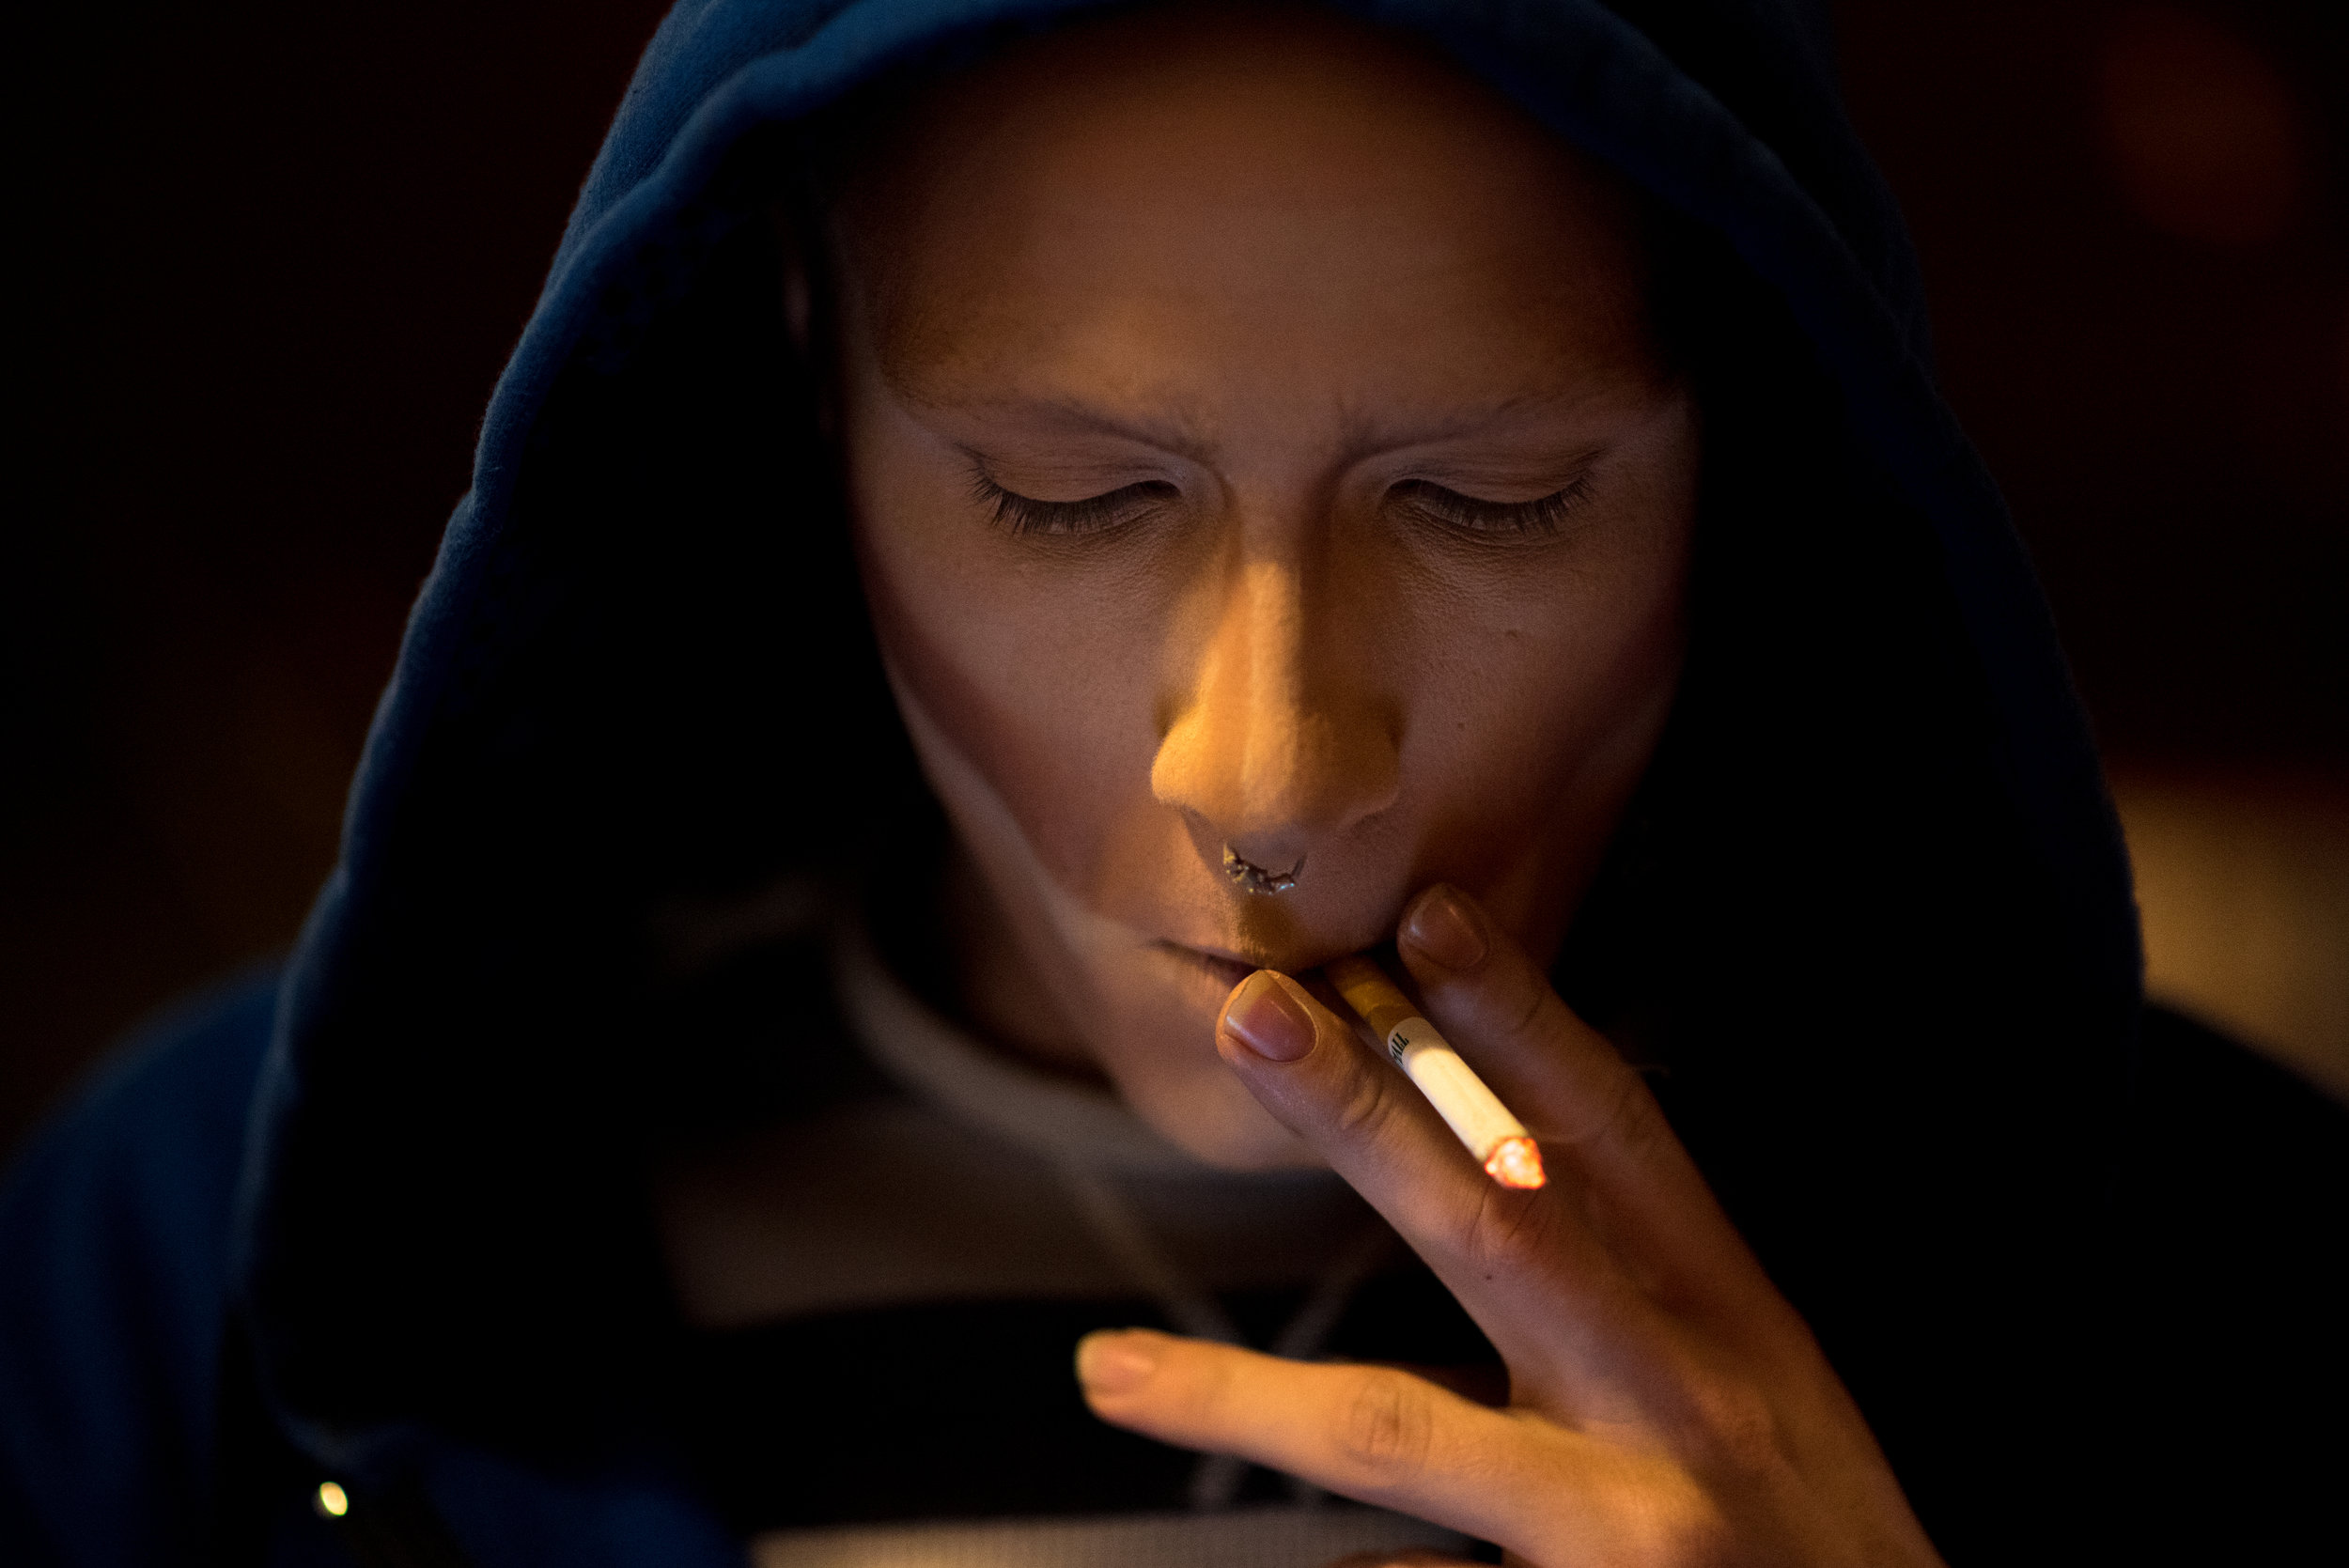 """Halfway through his makeup routine, Koedam steps outside of the dressing room to smoke a cigarette. While getting ready at most venues, he wears a blue sweatshirt with the crest of Ravenclaw from the """"Harry Potter"""" book series."""